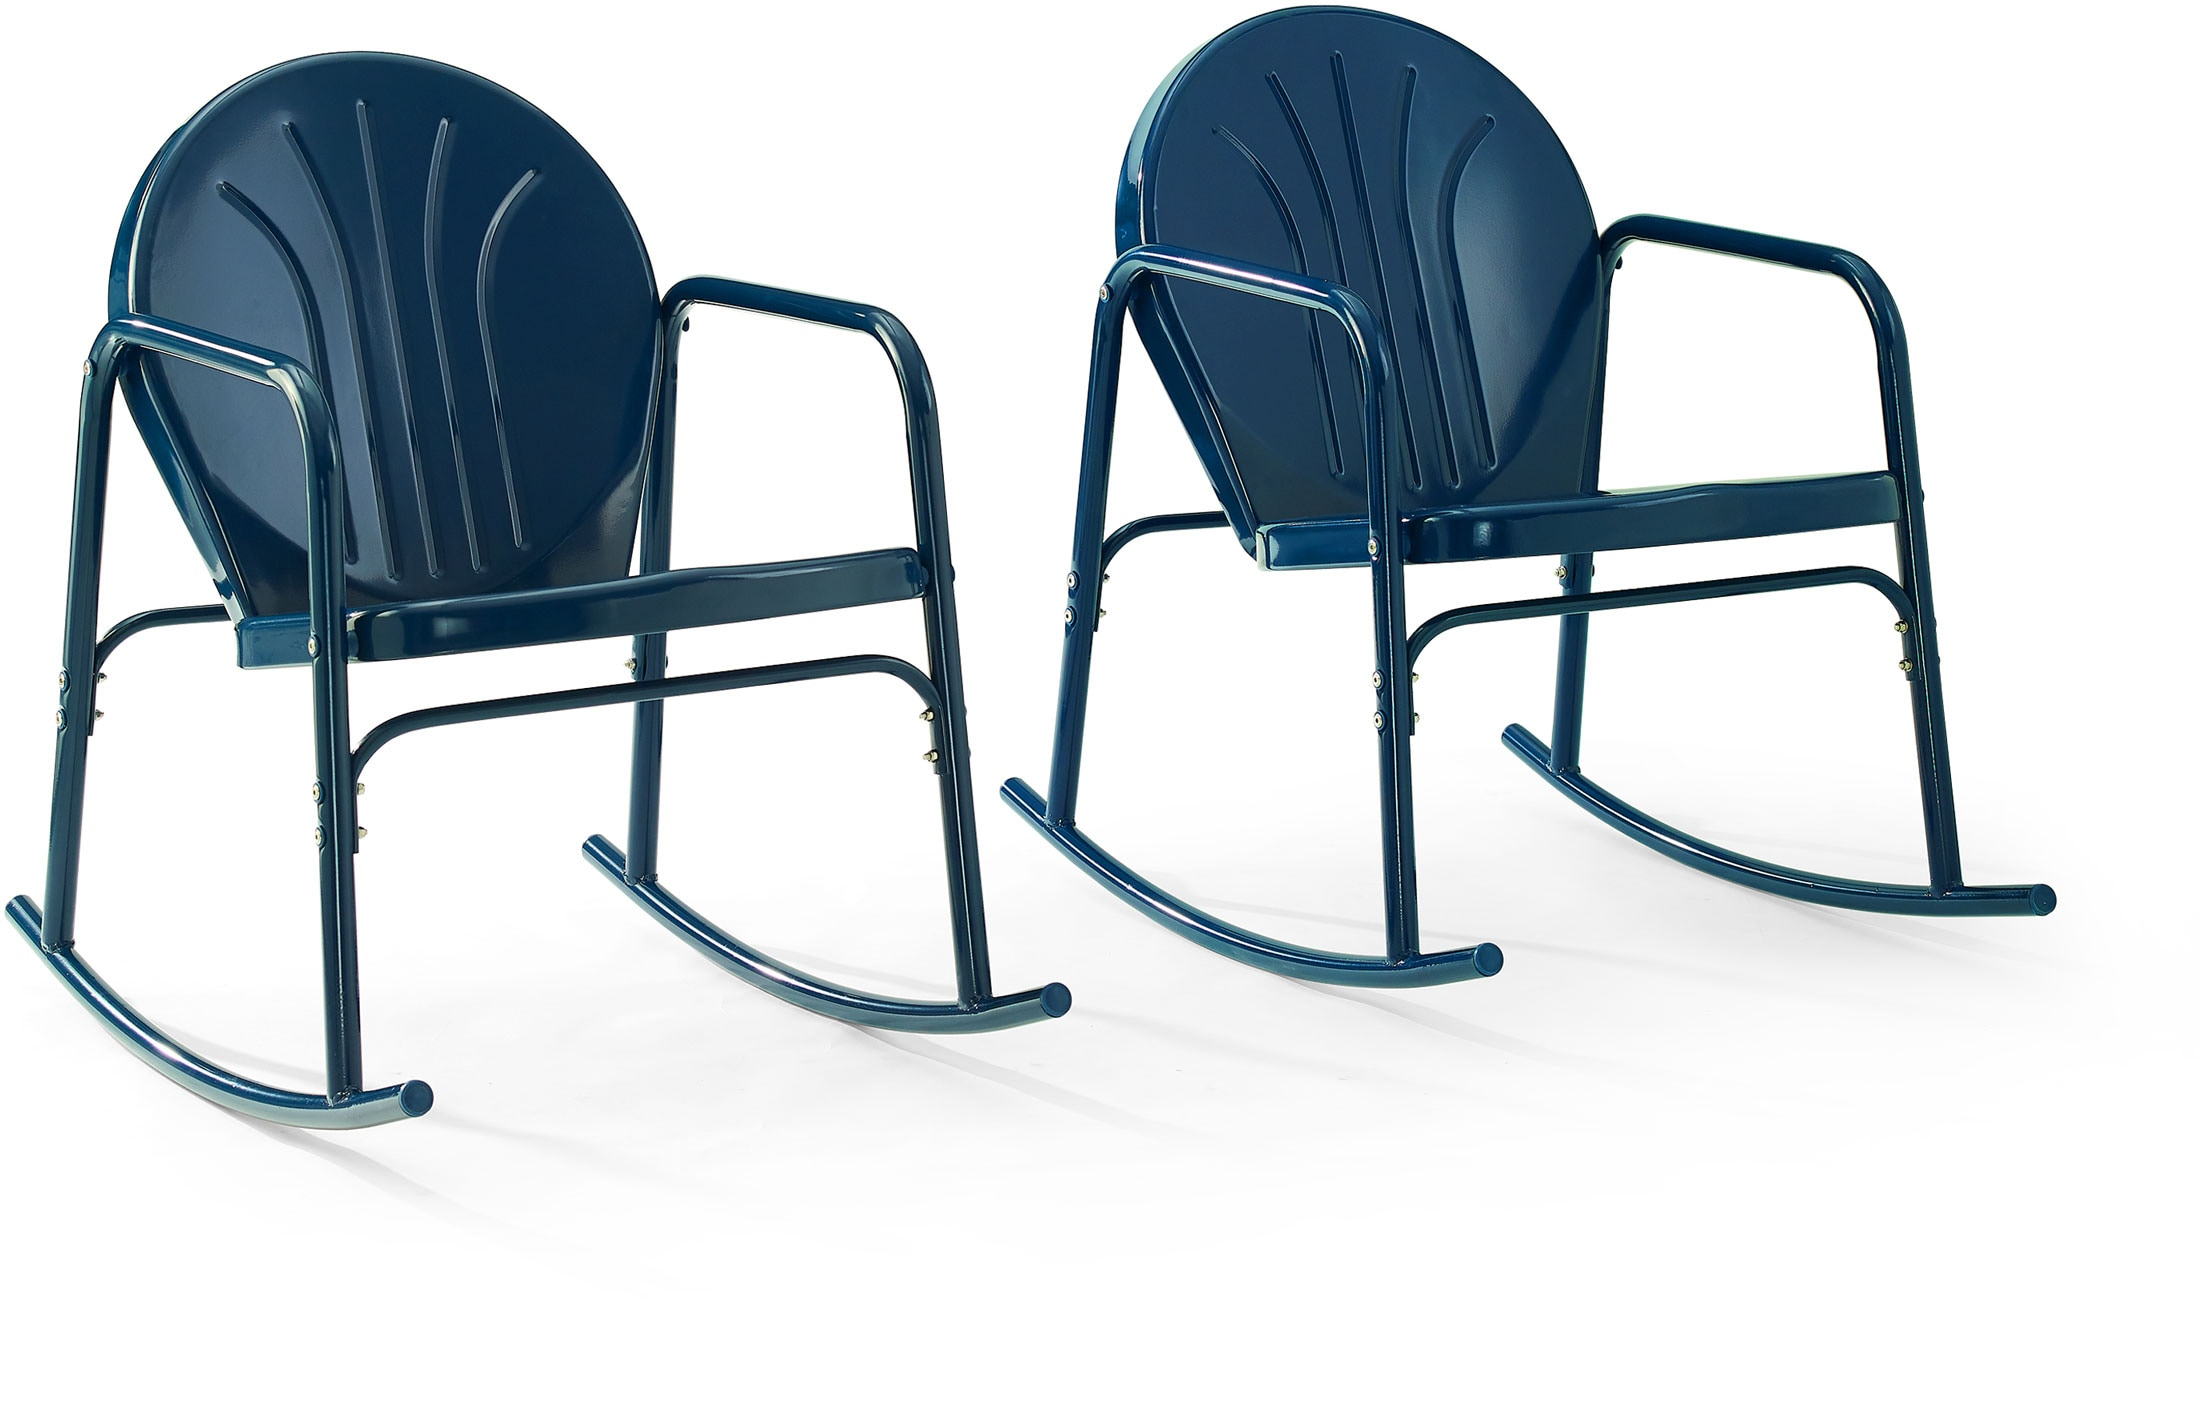 Outdoor Furniture - Kona Set of 2 Outdoor Rocking Chairs